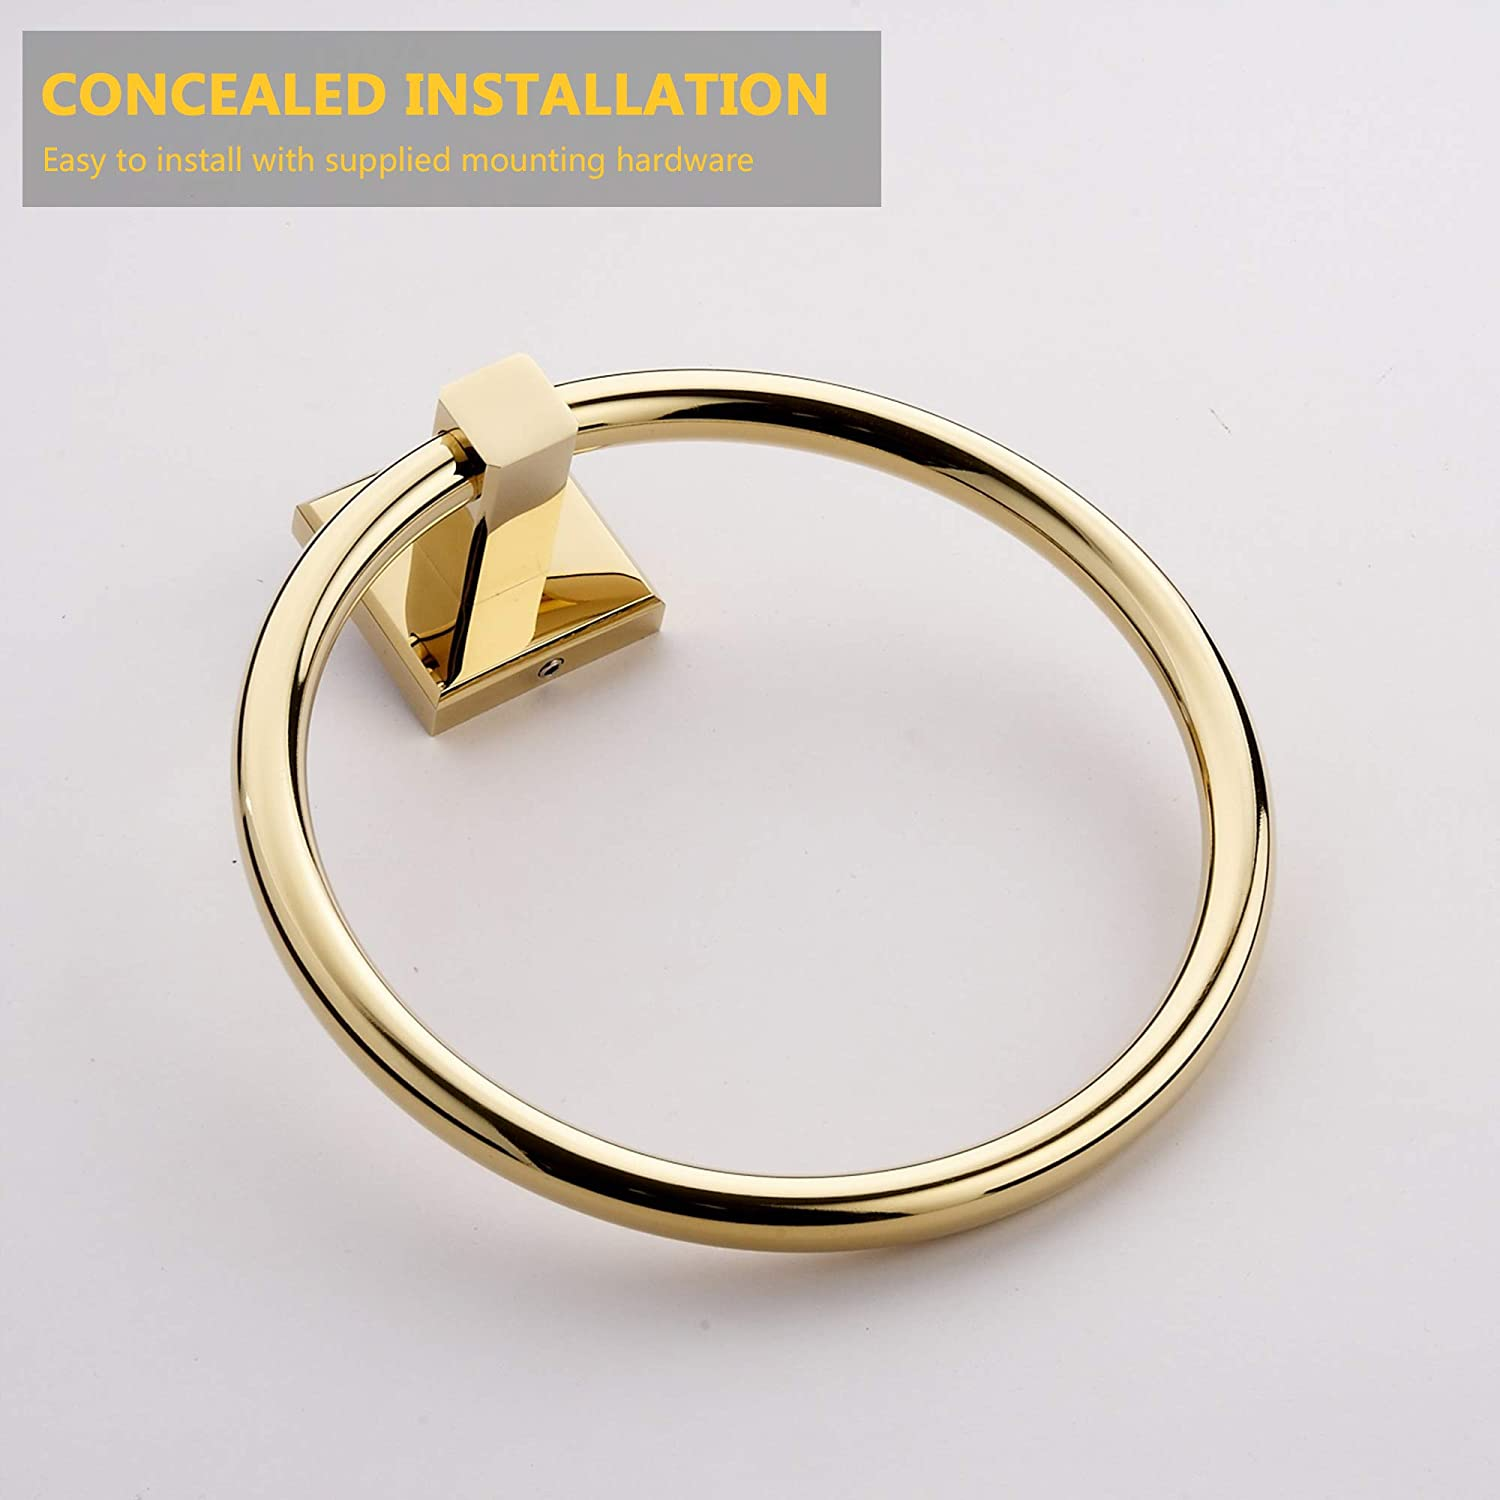 Brass Towel Ring Wall Mounted Gold Round Towel Rings Rack Holder